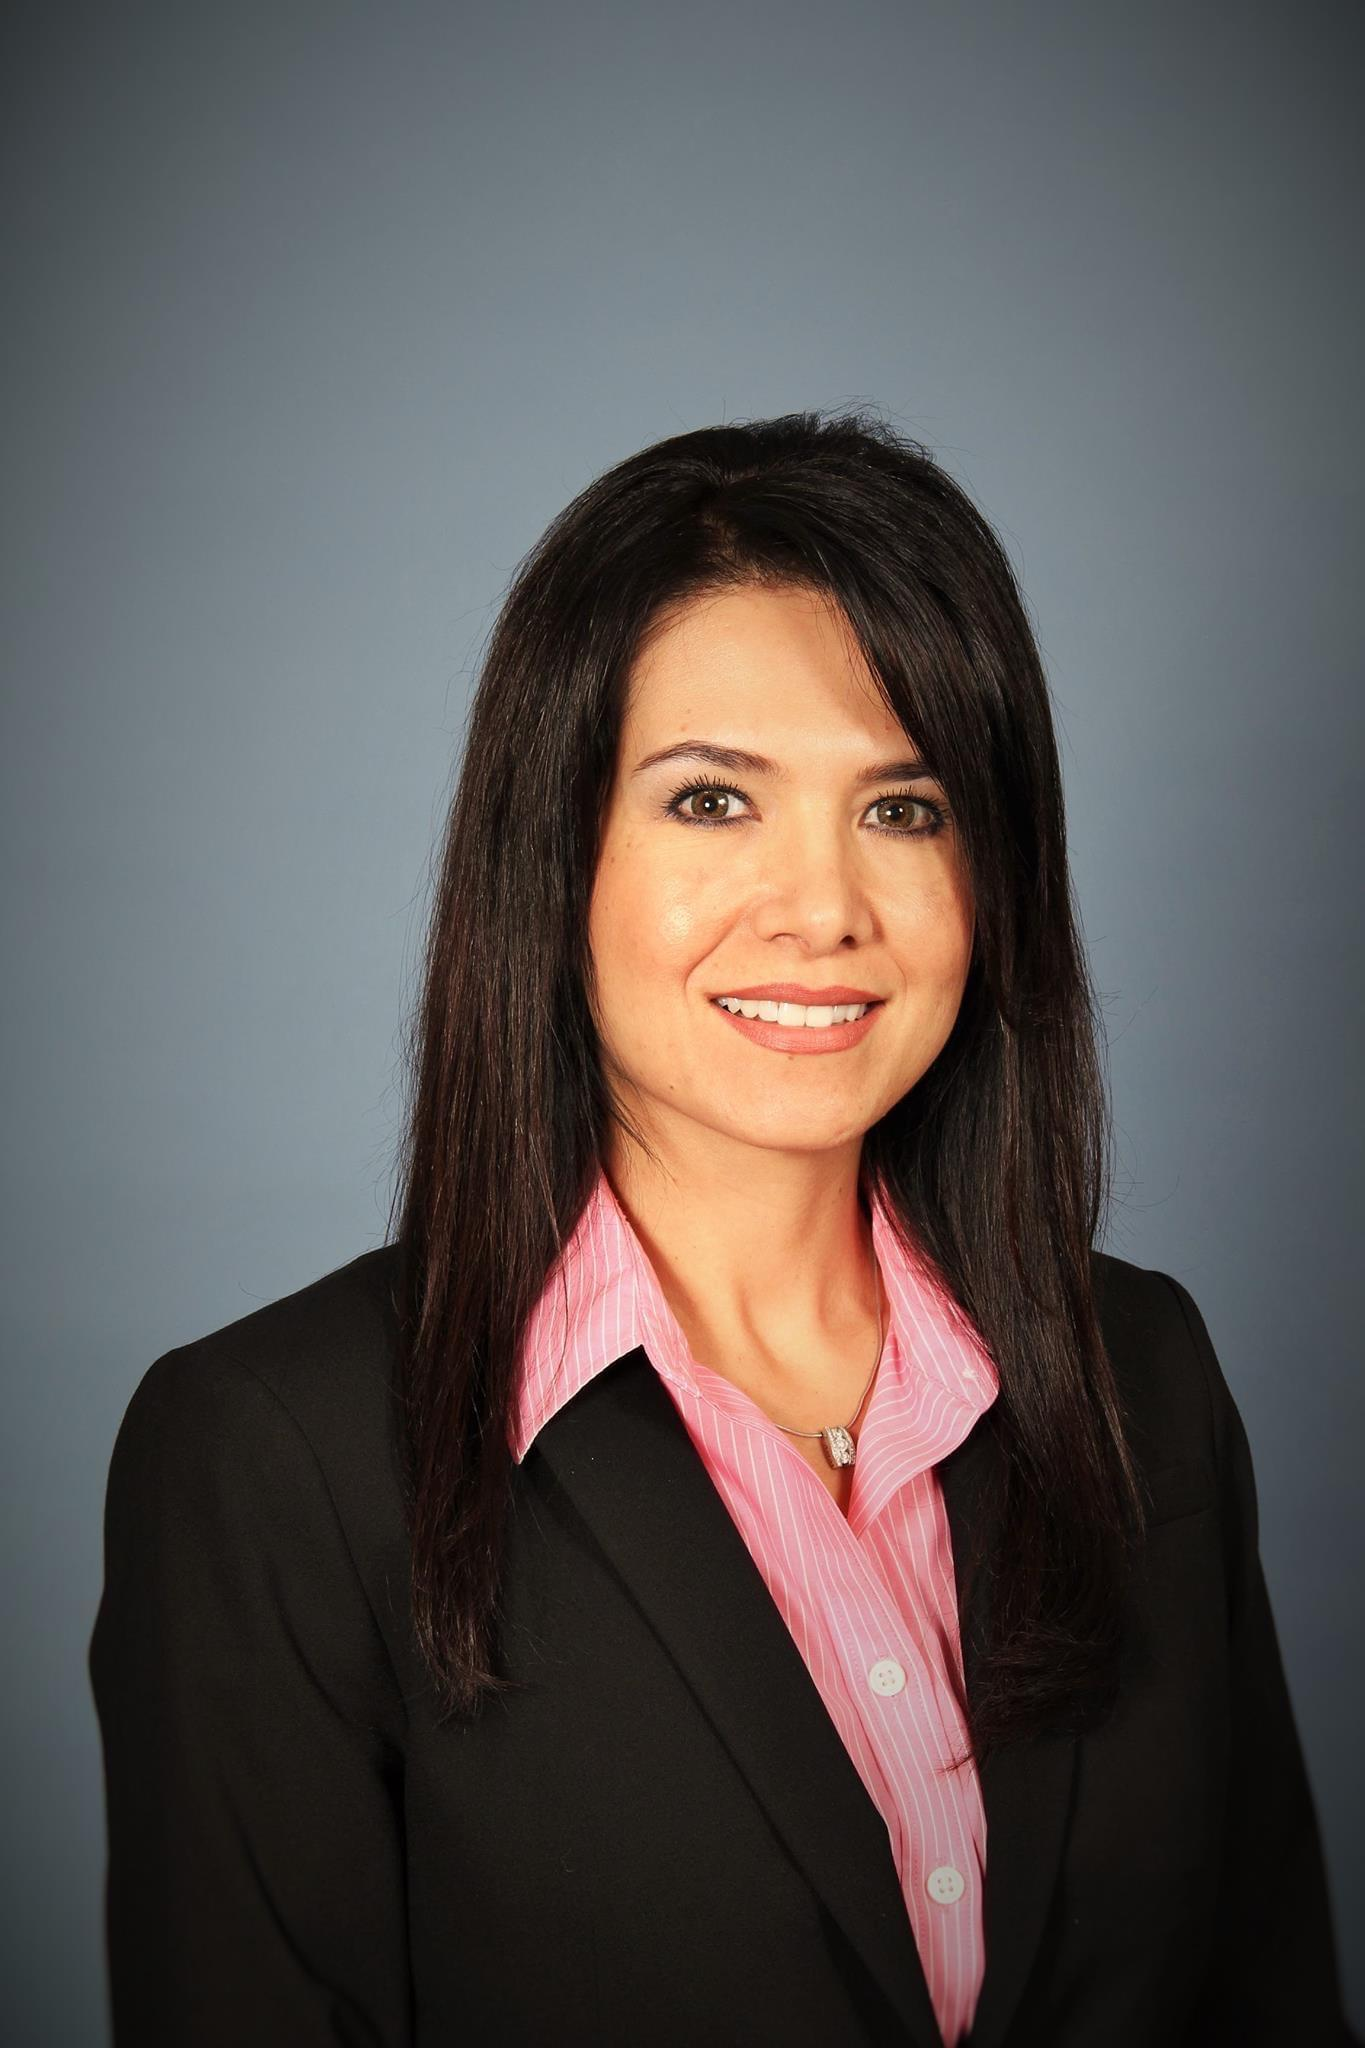 AIDA S. CASTRO Financial Professional & Insurance Agent